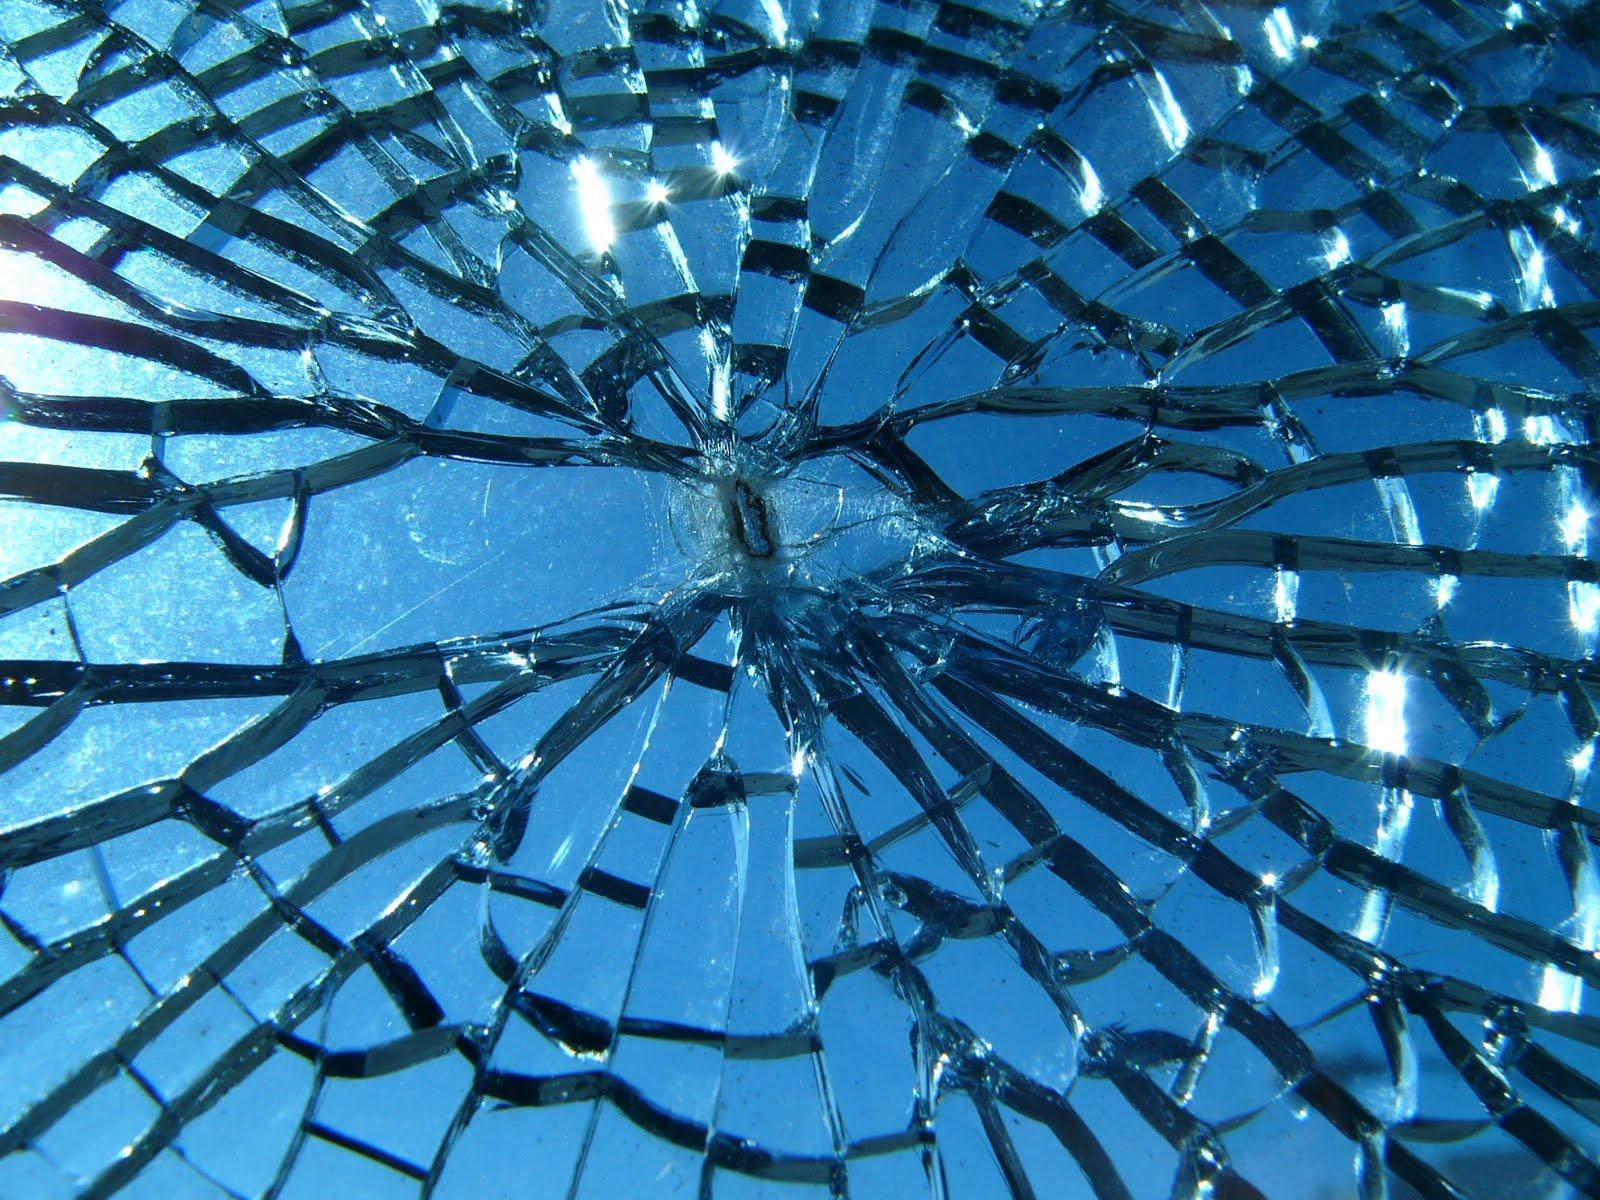 Broken Glass Backgrounds - Wallpaper Cave